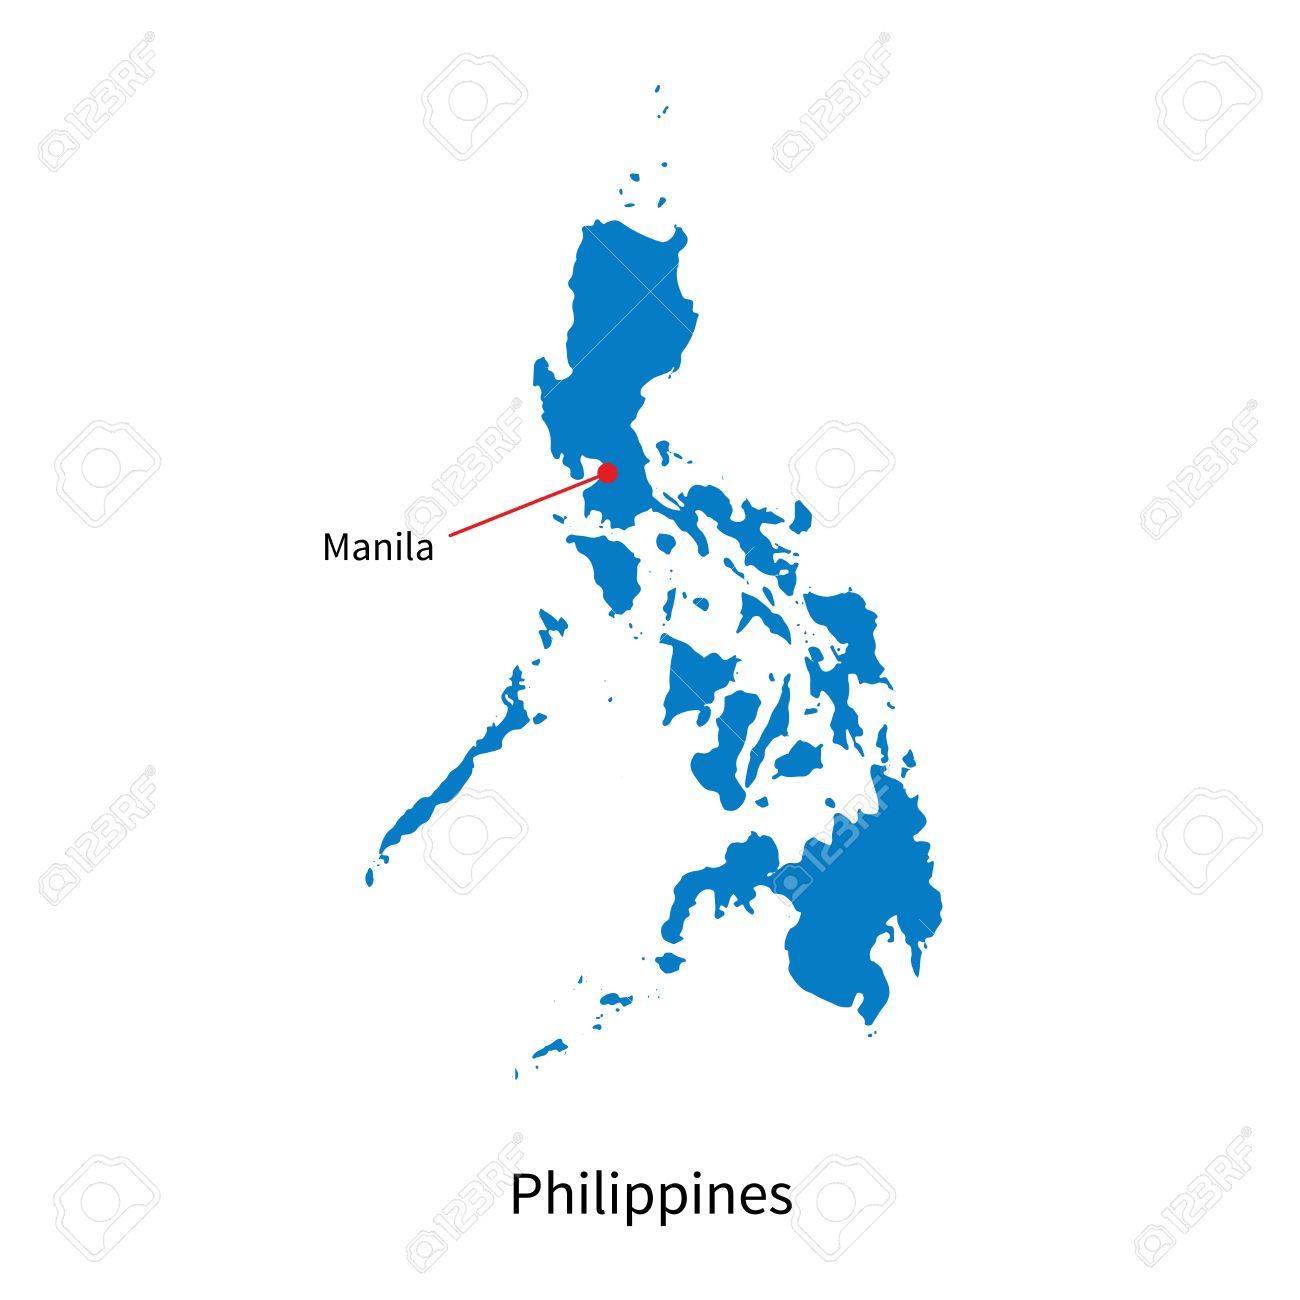 Detailed Map Of Philippines And Capital City Manila Royalty Free ...